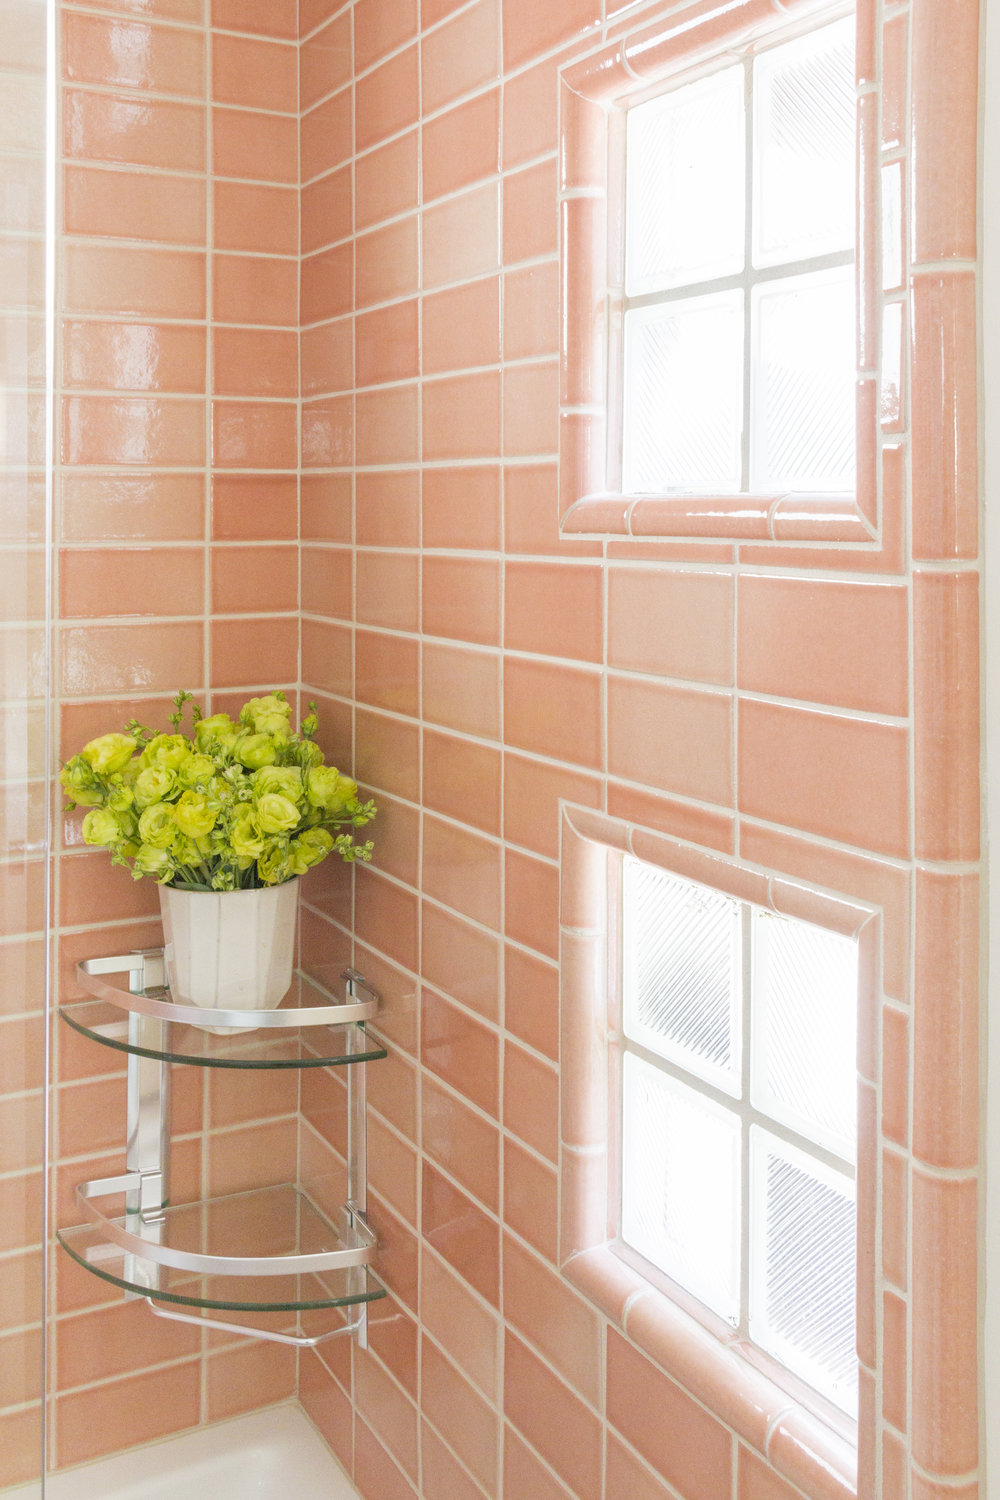 The bath and shower feature locally sourced handmade ceramic tiles in a coral gloss.